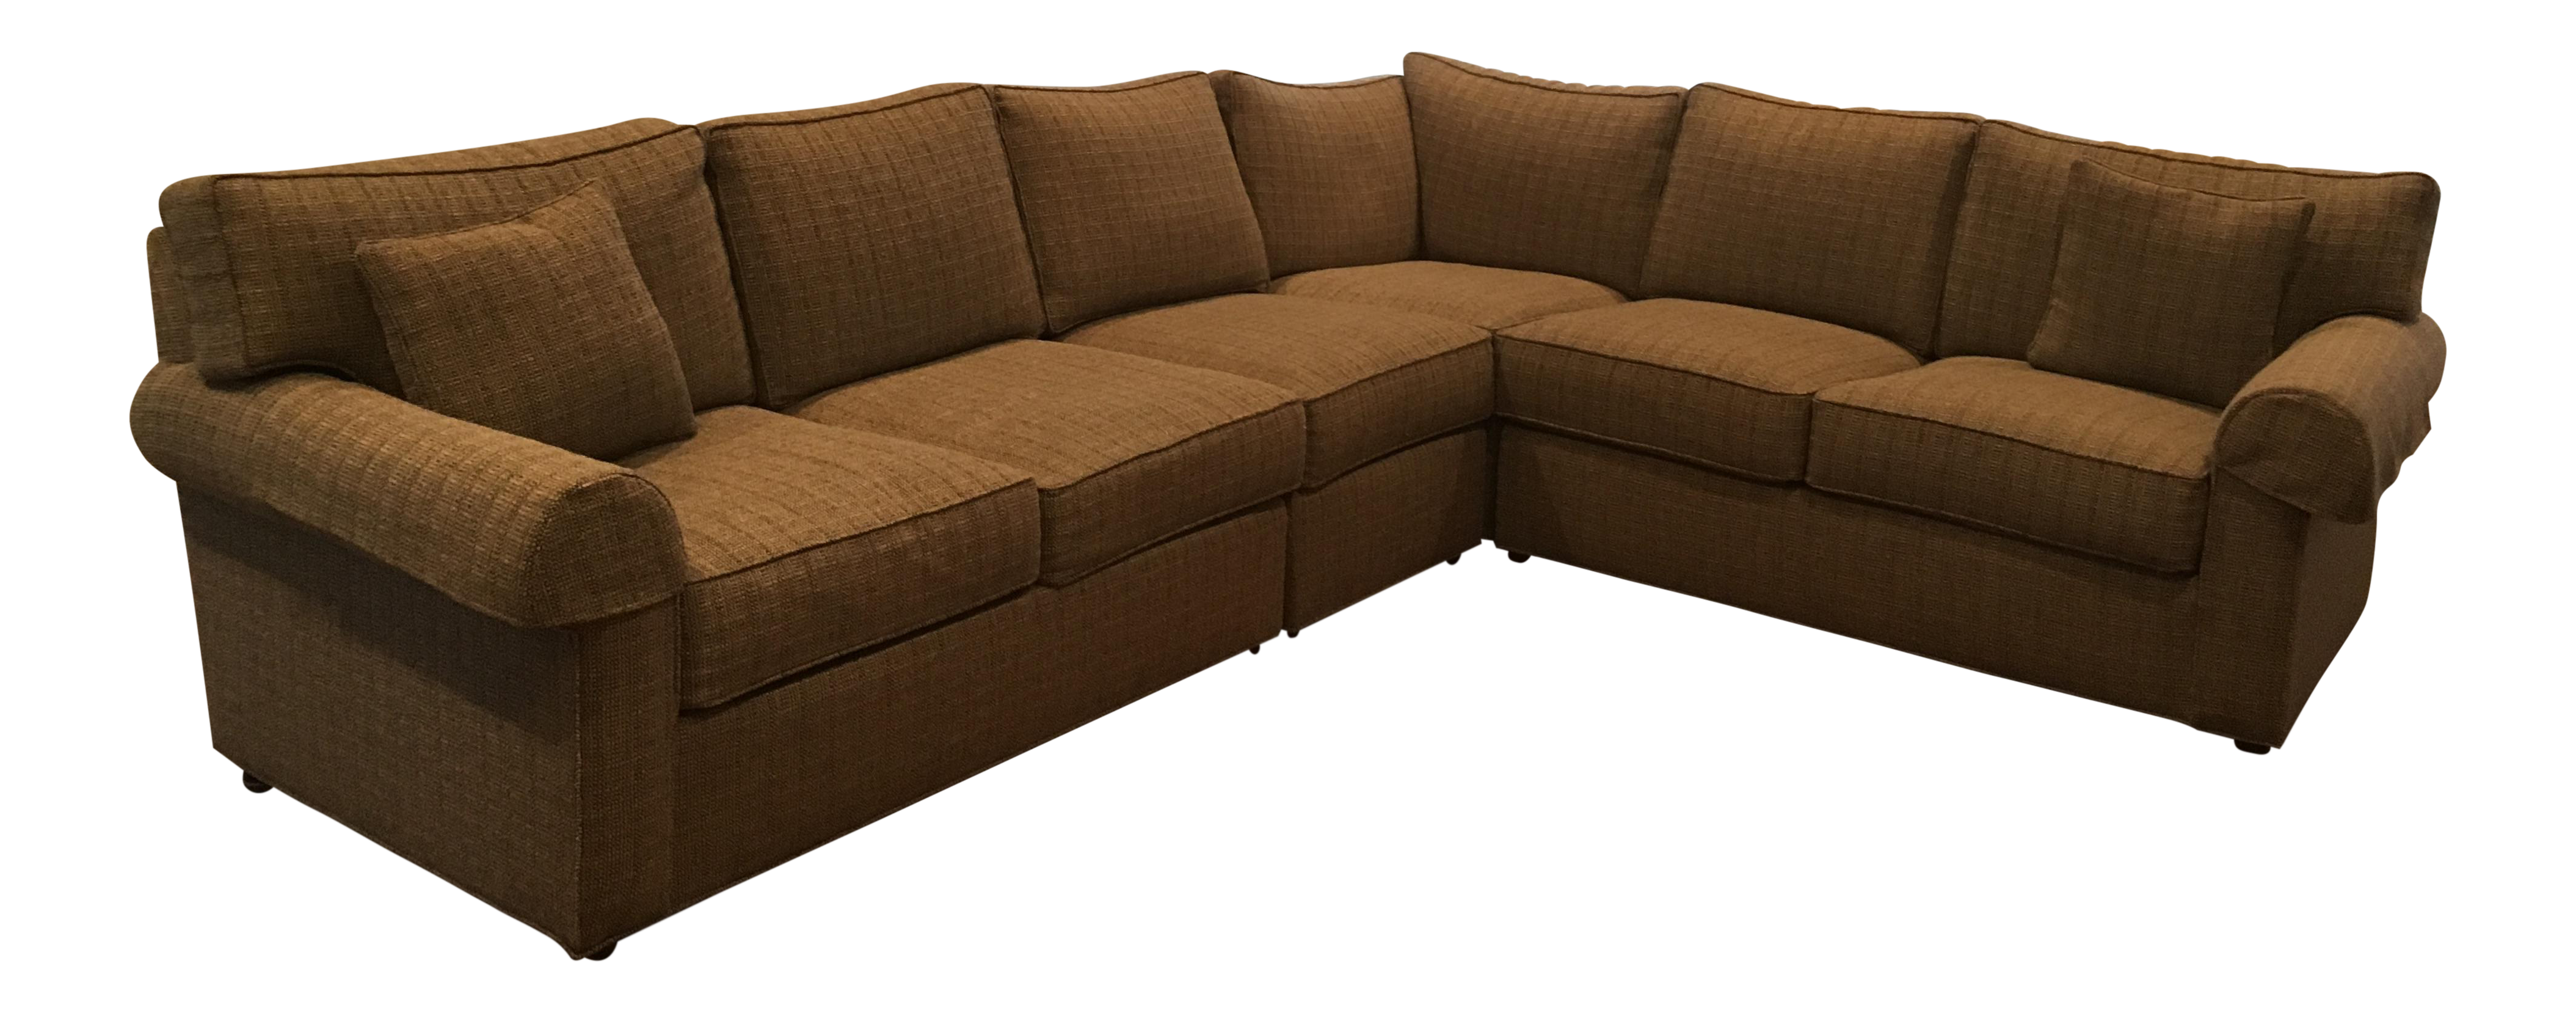 Ethan Allen Sectional Sofa   Image 1 Of 11